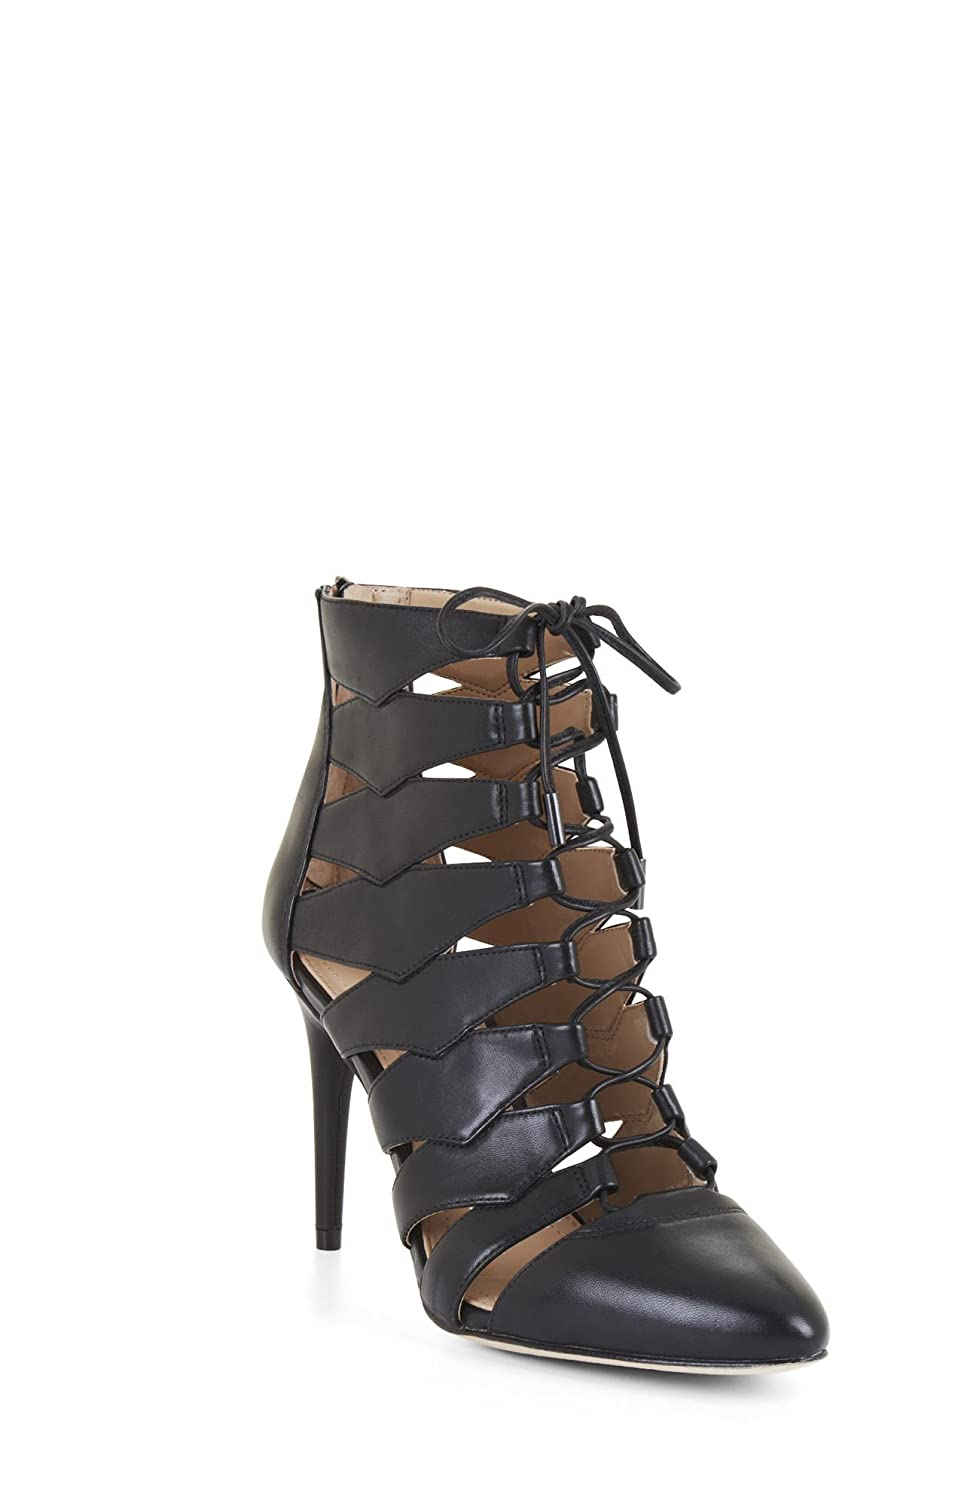 BCBG MAX AZRIA Bren Lace Up HIgh Heel Pointed Toe Cutout Single Sole Bootie